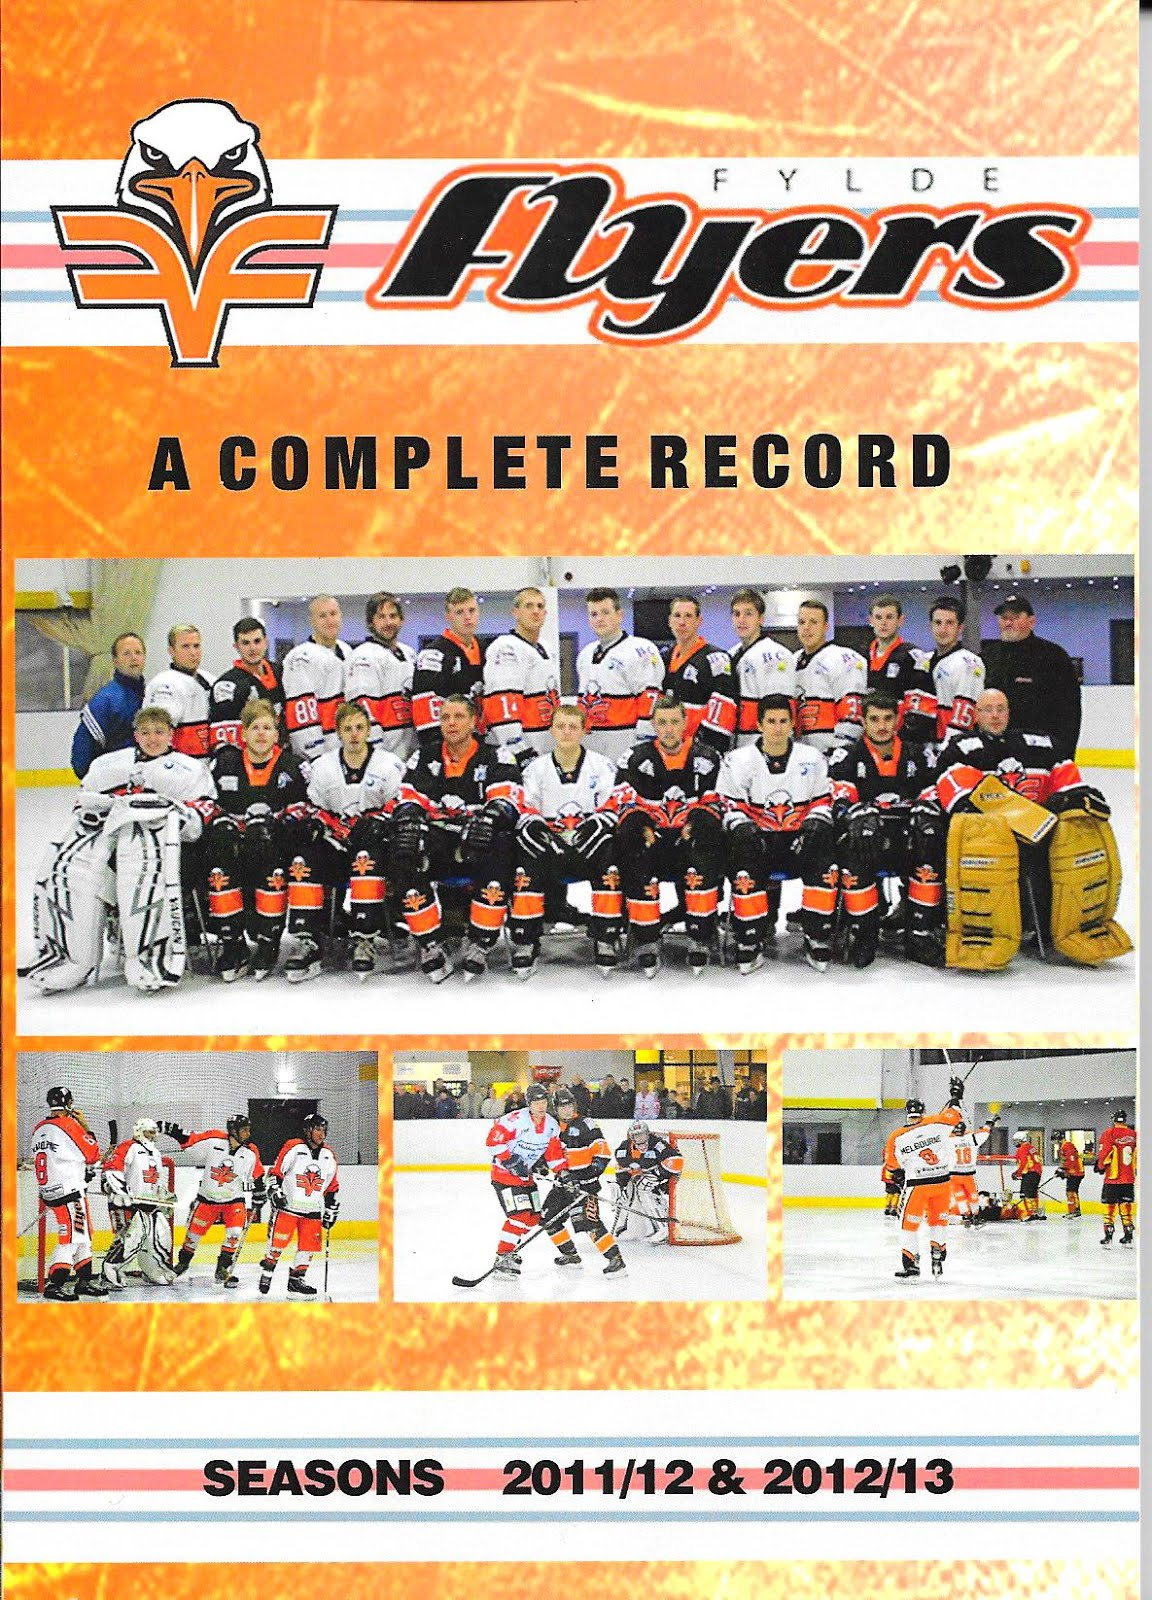 New Fylde Flyers Book - Available Now!